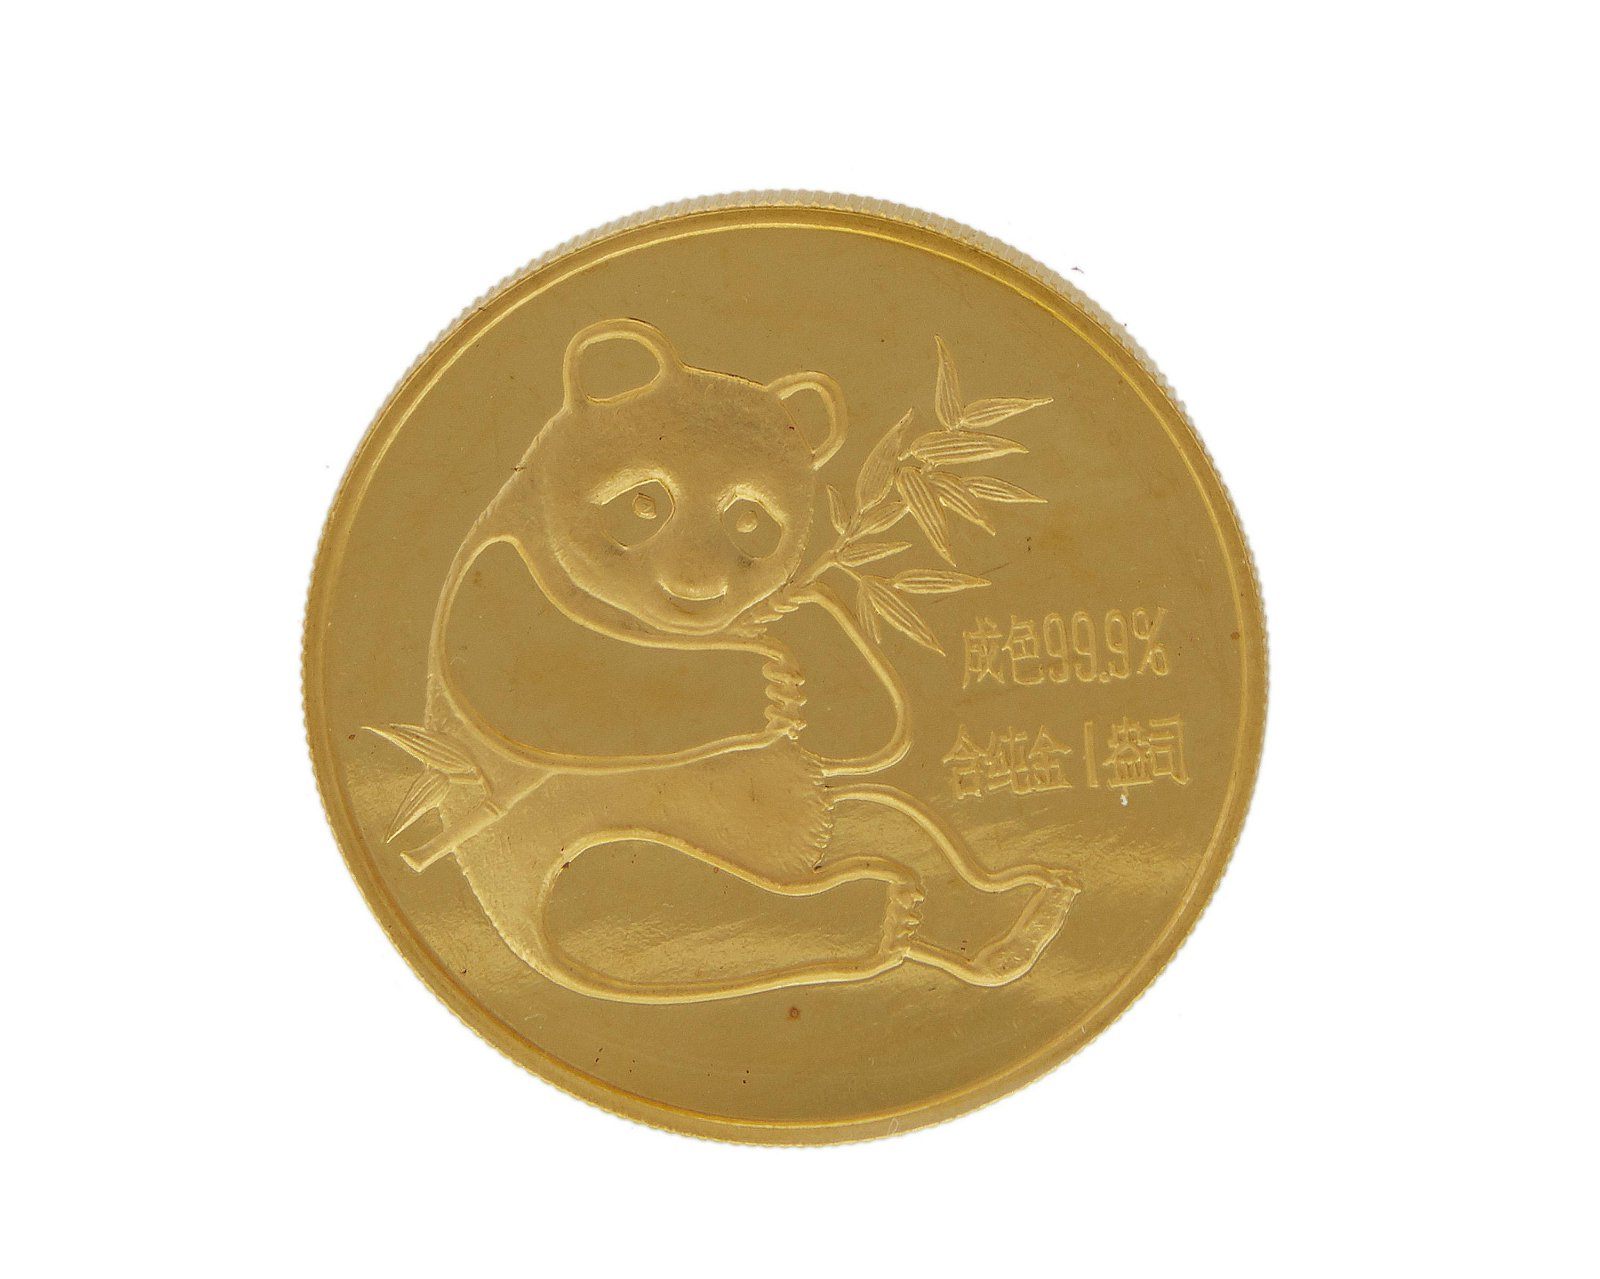 A Chinese 1982 gold panda coin